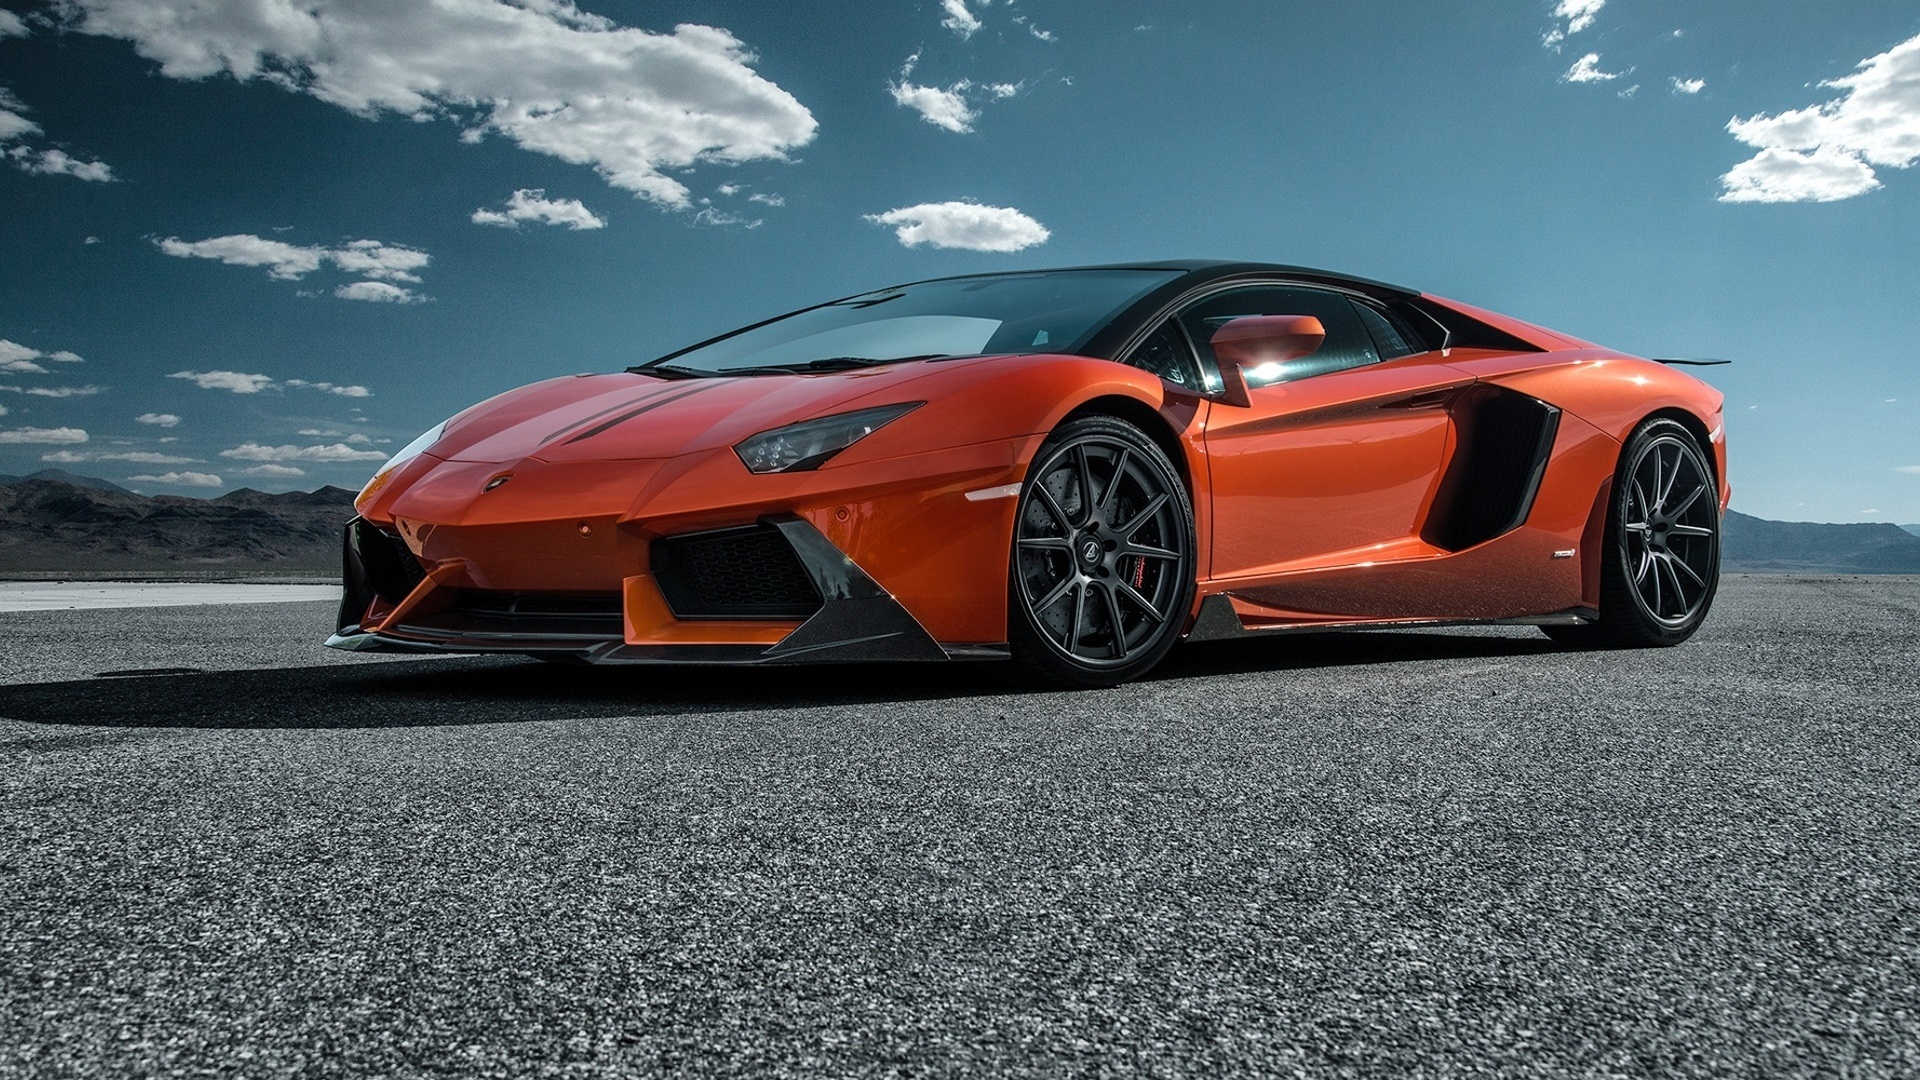 Aventador 50th Anniversary as well Lamborghini 4 Million Dollar Car